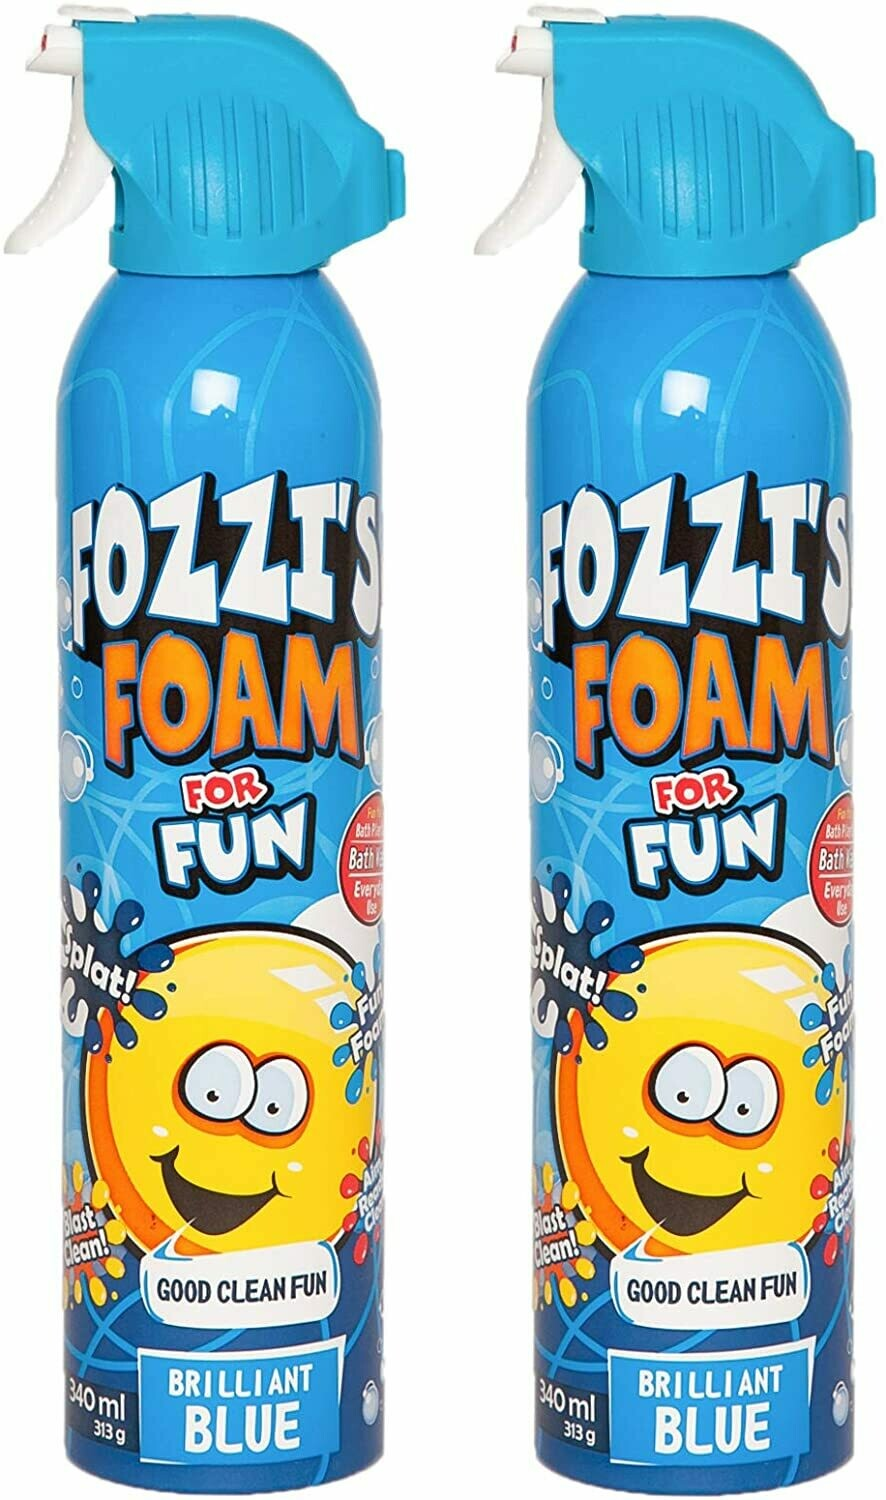 FOZZI's Bath Foam Aerosol for Kids, Brilliant Blue, Good Fozzi Fun, 11.49 ounces (340ml) Each (Pack of 2) (Free Shipping)